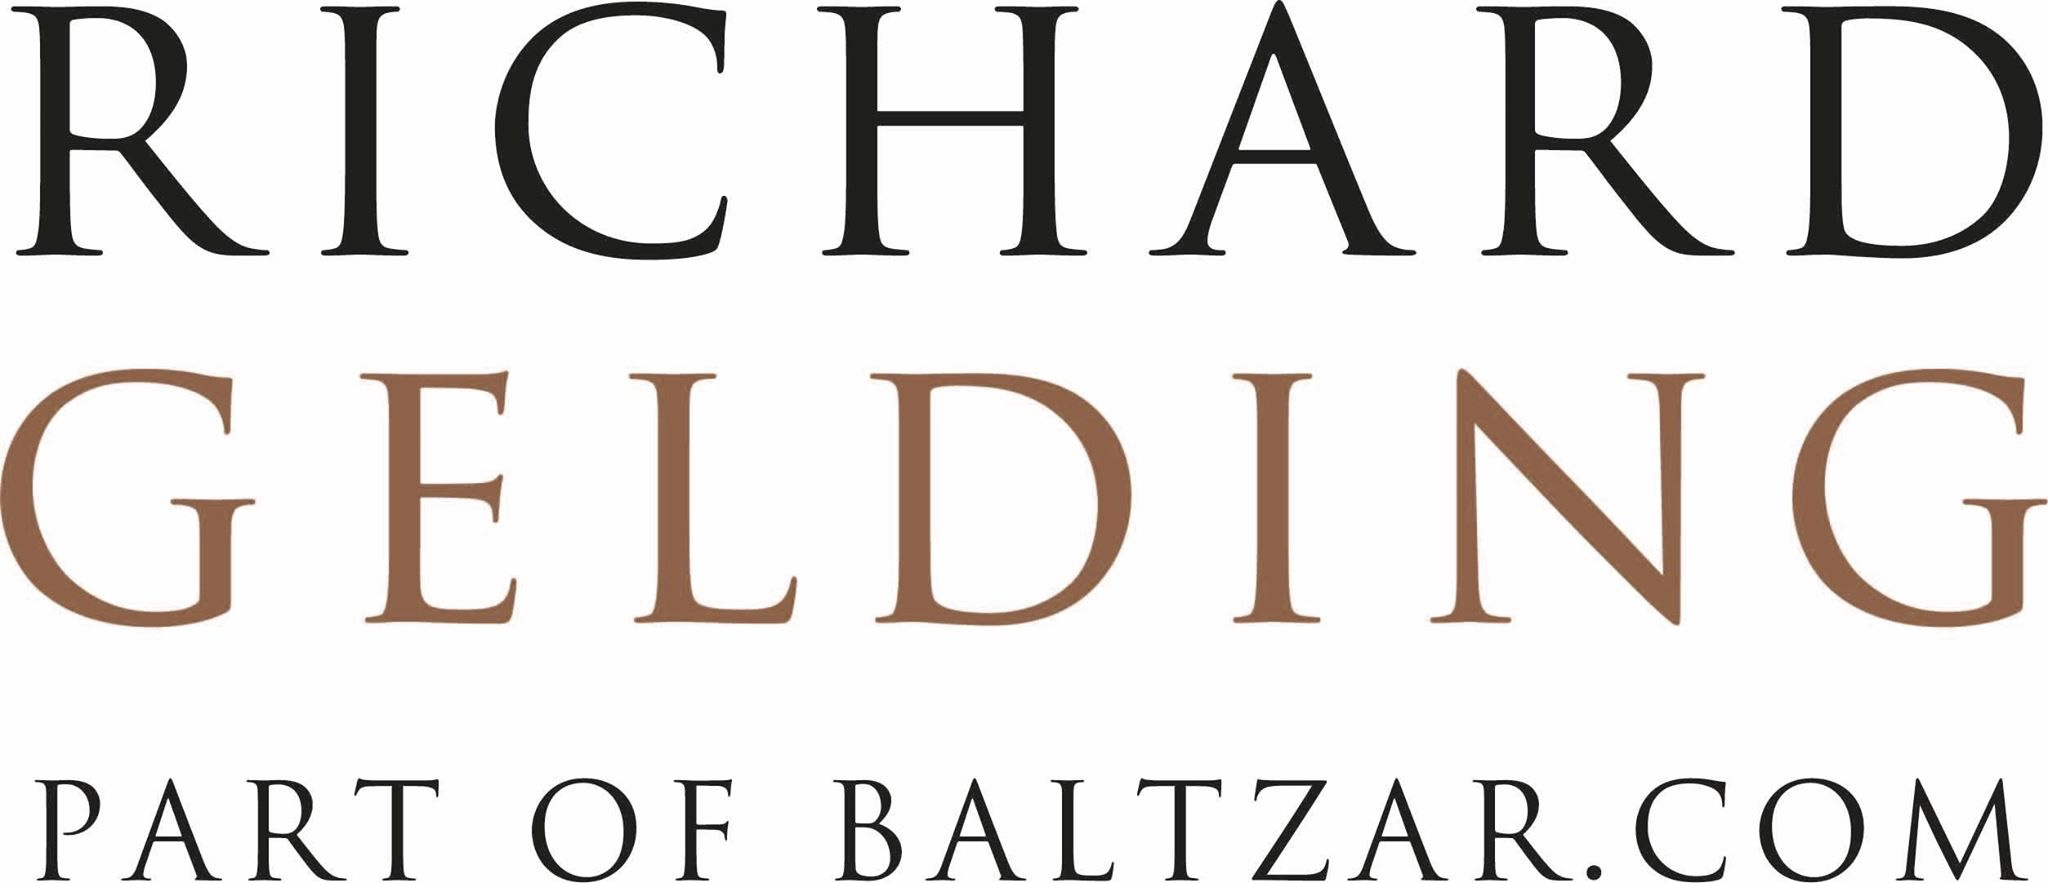 Richard Gelding Menswear | Part of baltzar.com